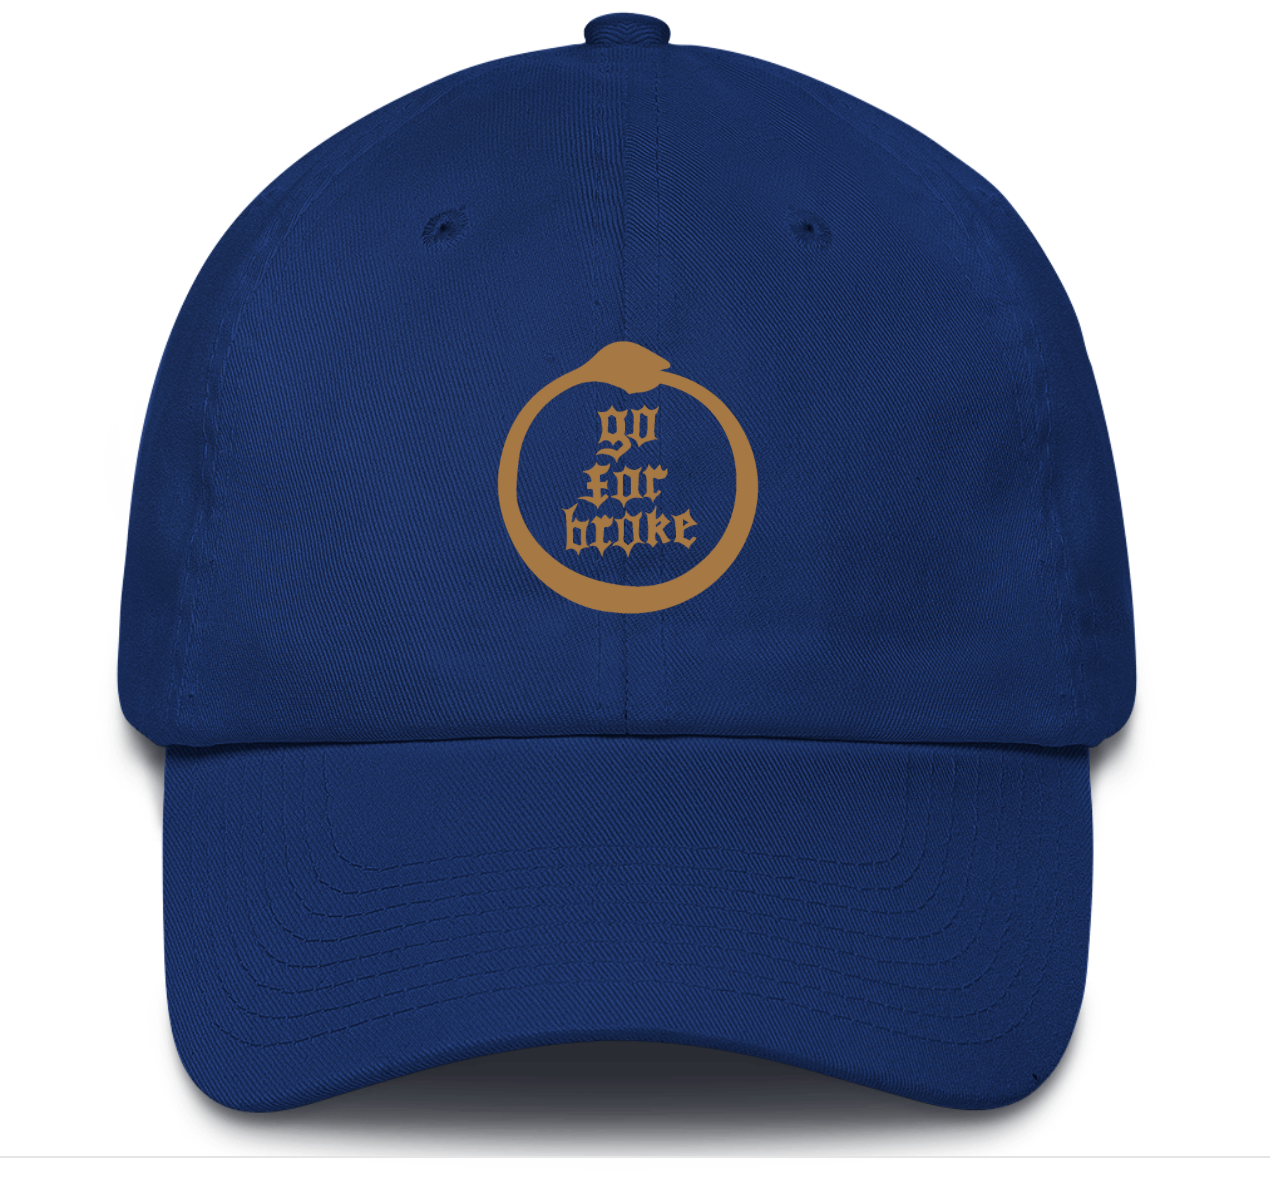 Men's & Women's Go For Broke Full Logo Blue Dad Hat